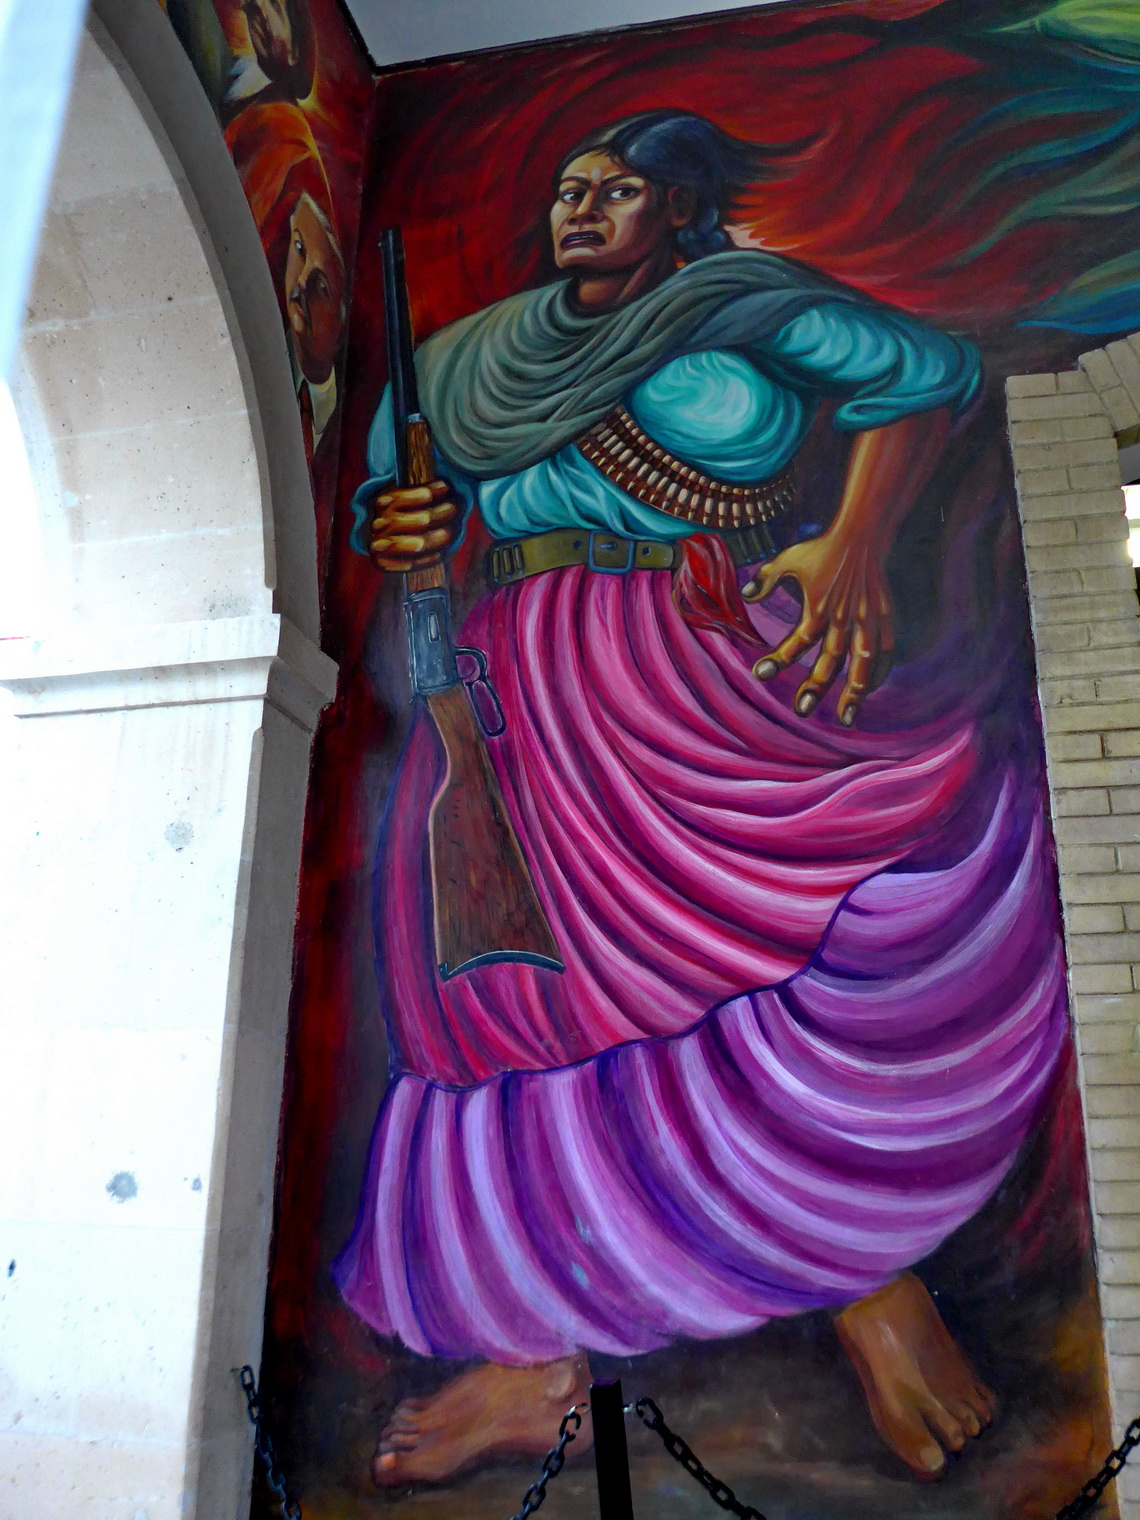 Mural in the Museo Casa de Villa